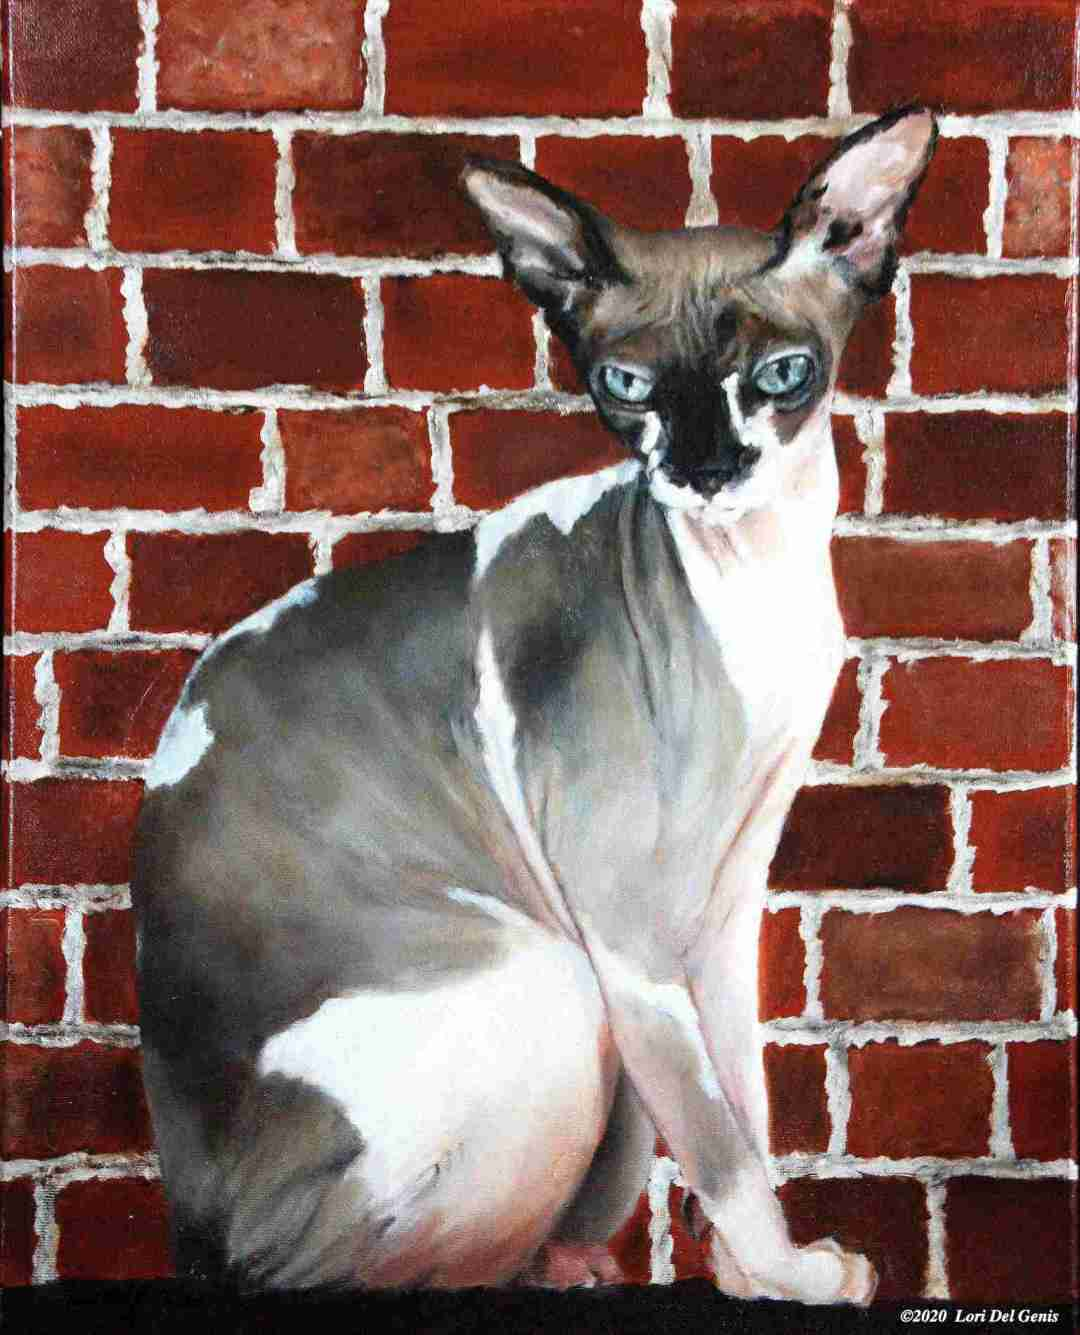 Sebastian commissioned oil portrait of a hairless sphinx cat with brown markings (Lori Del Genis, 2020)